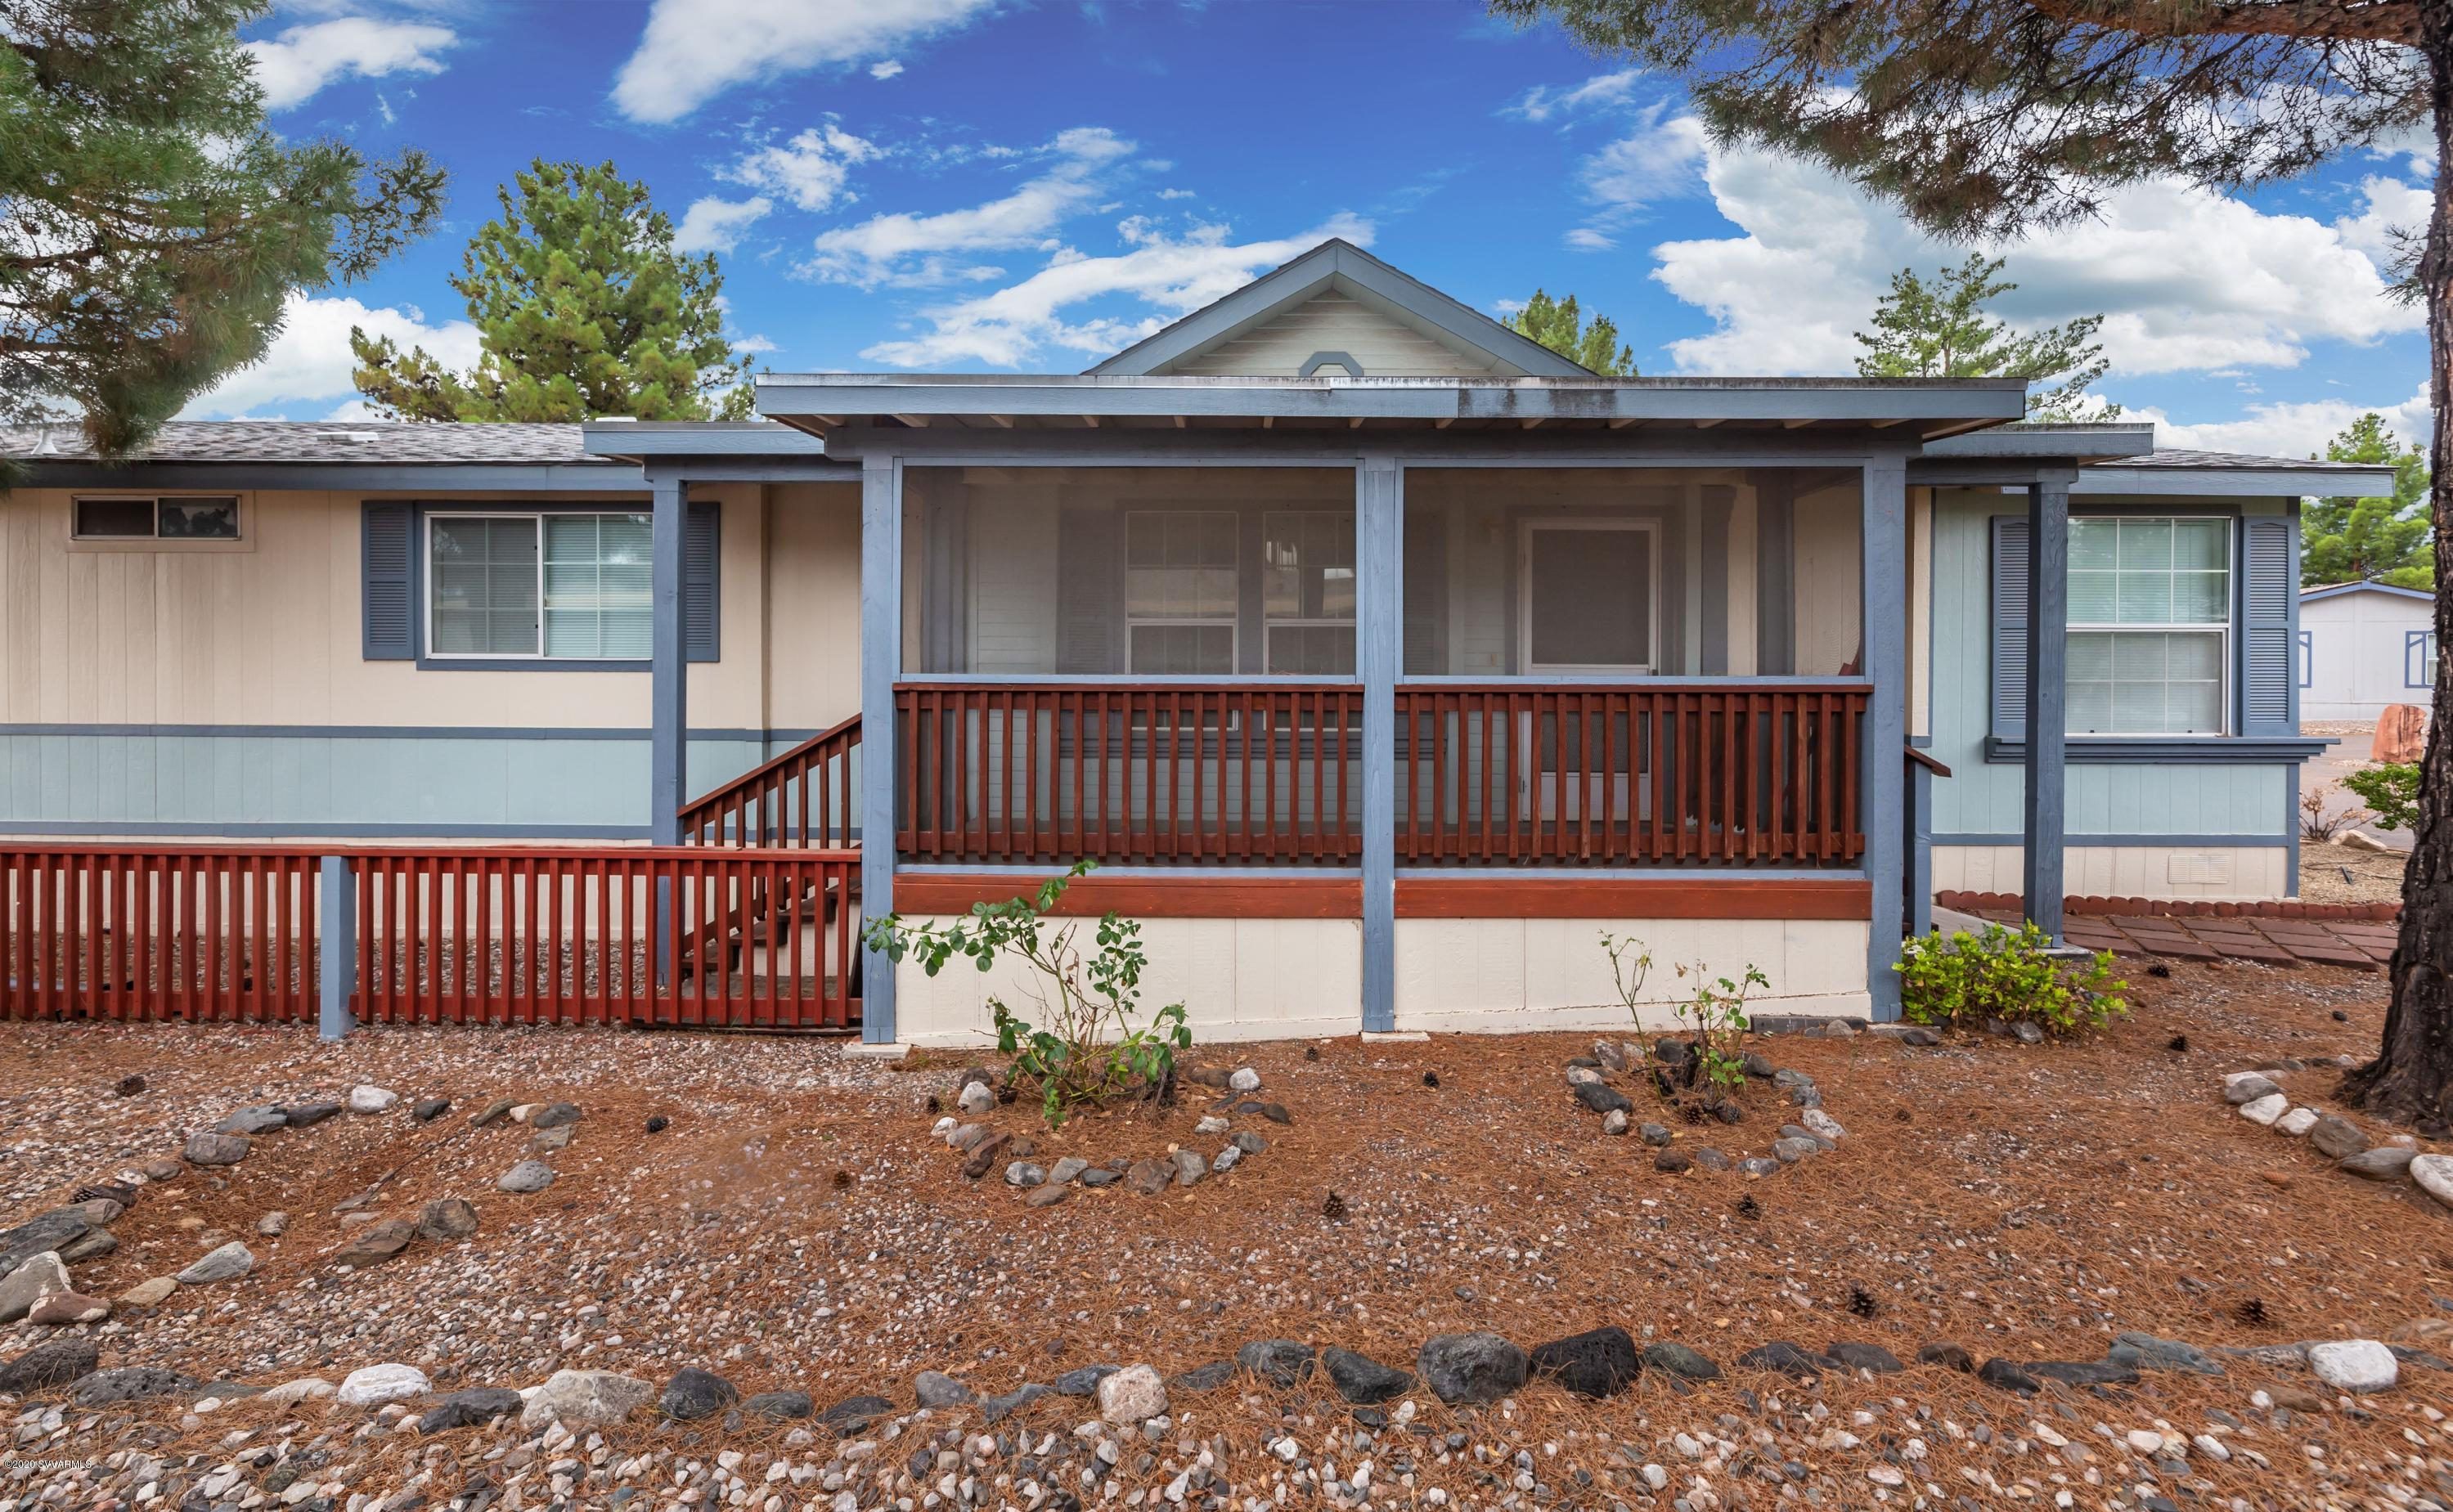 2050 W State Route 89a UNIT 234 Cottonwood, AZ 86326